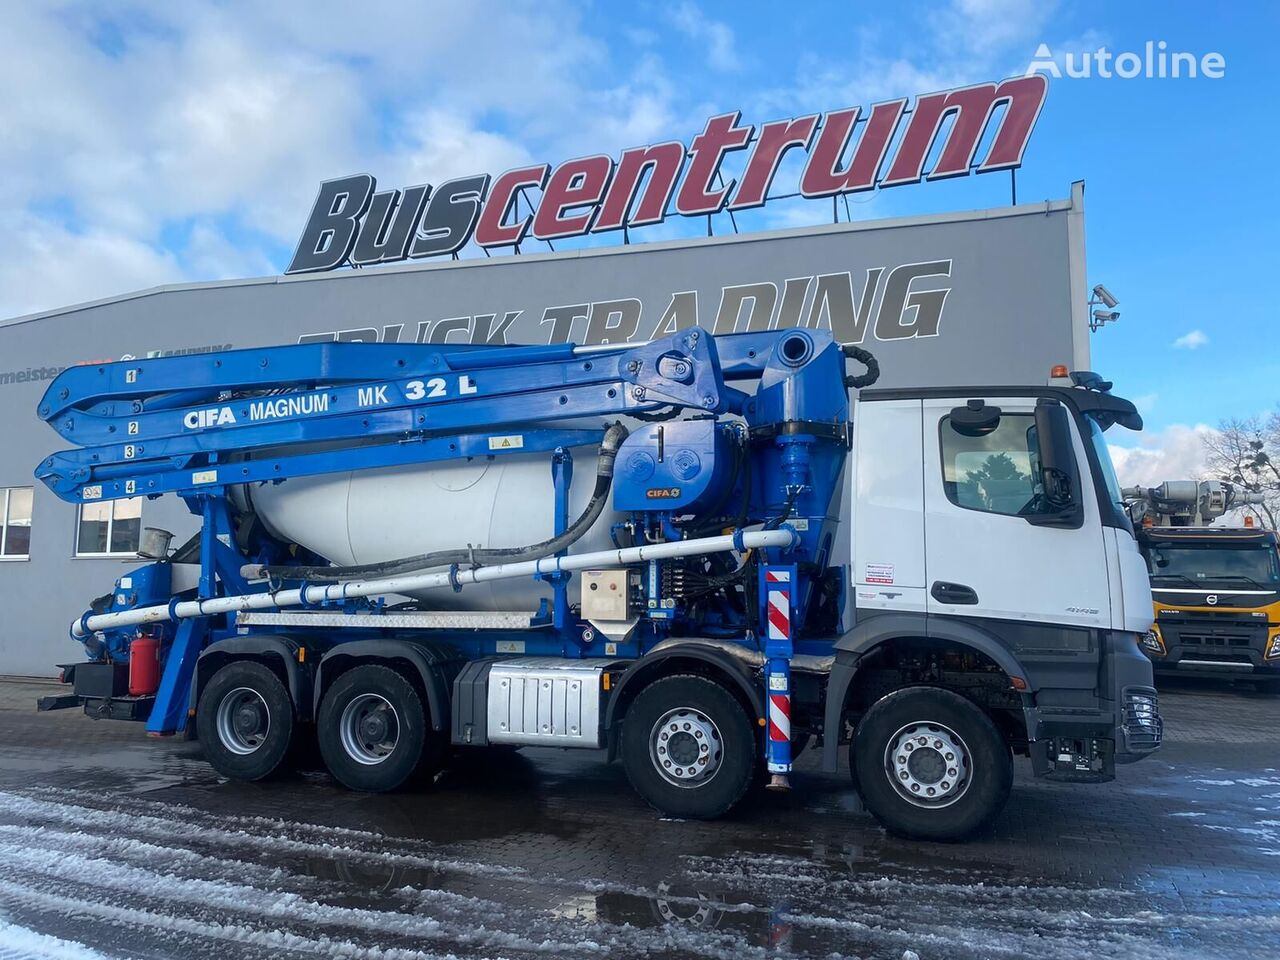 Cifa Magnum MK 32  on chassis MERCEDES-BENZ Arocs 4145 concrete pump